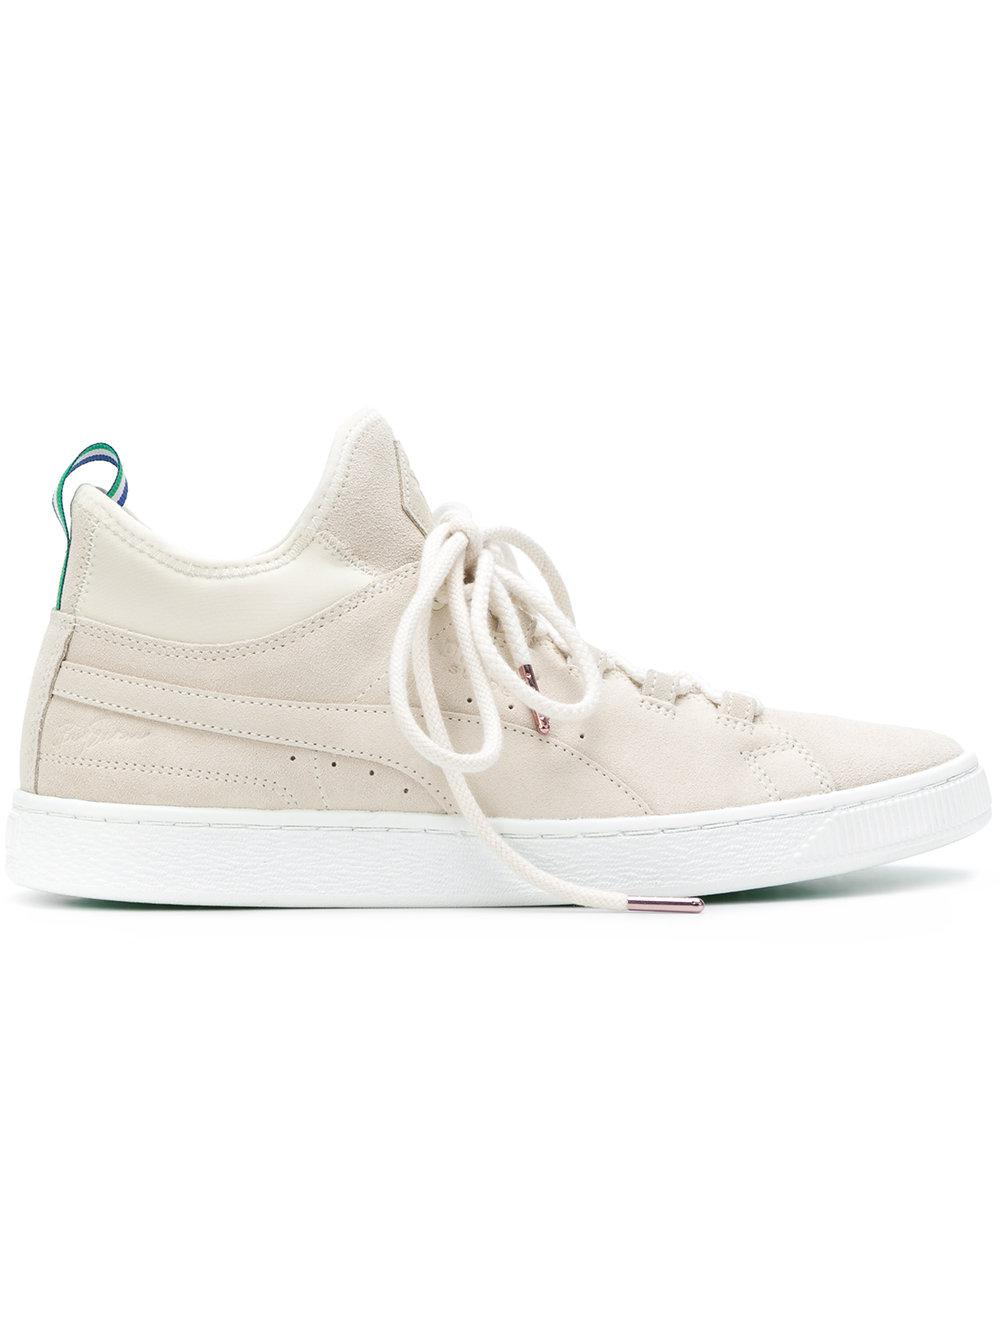 a68ef5a4a0a Lyst - Puma Mid Big Sean Sneakers in White for Men